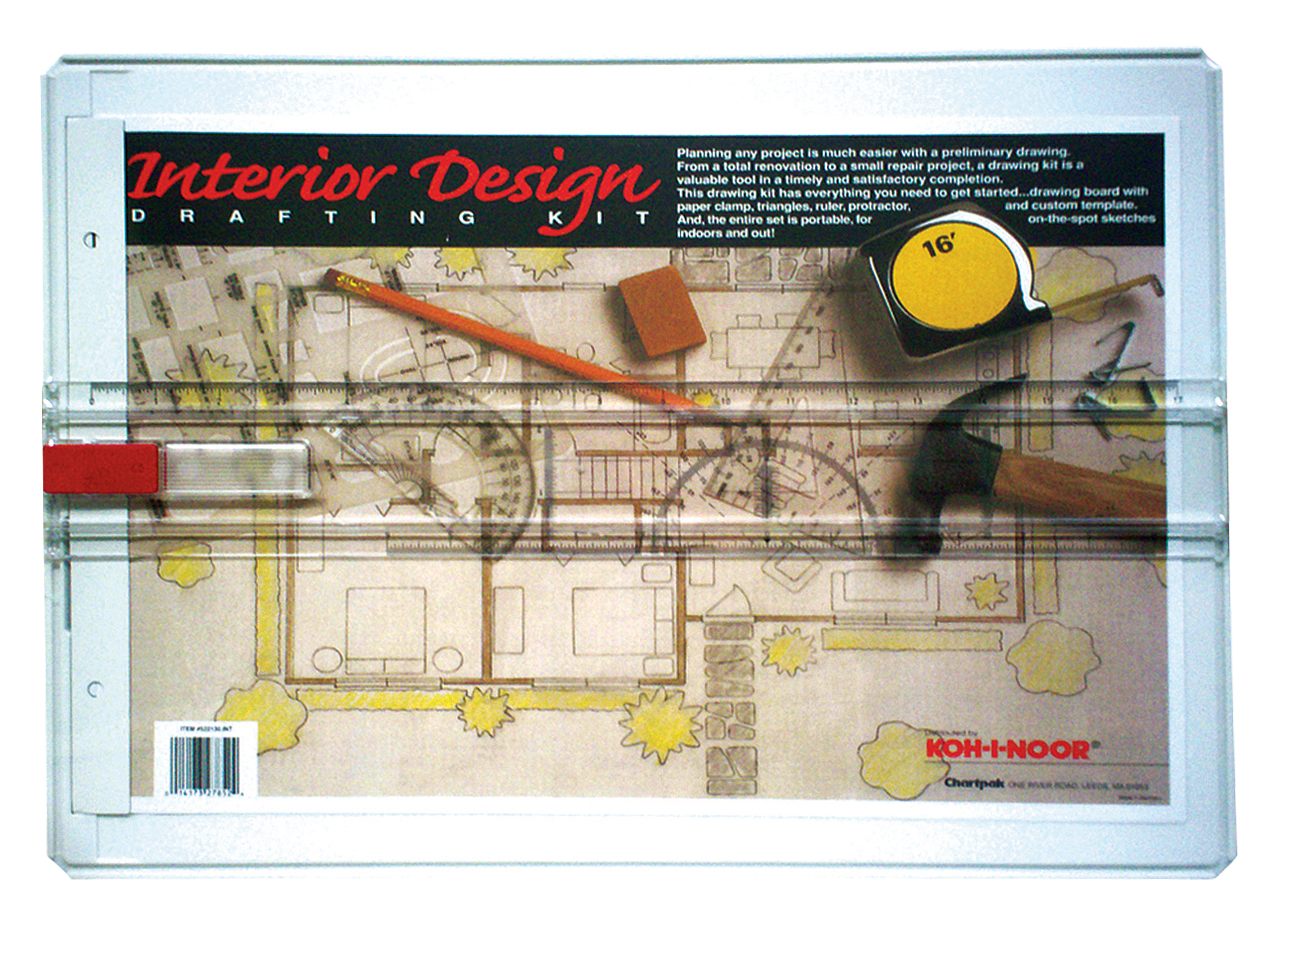 INTERIOR DESIGN DRAFTING KIT Contains Plastic Drawing Board Interior Design